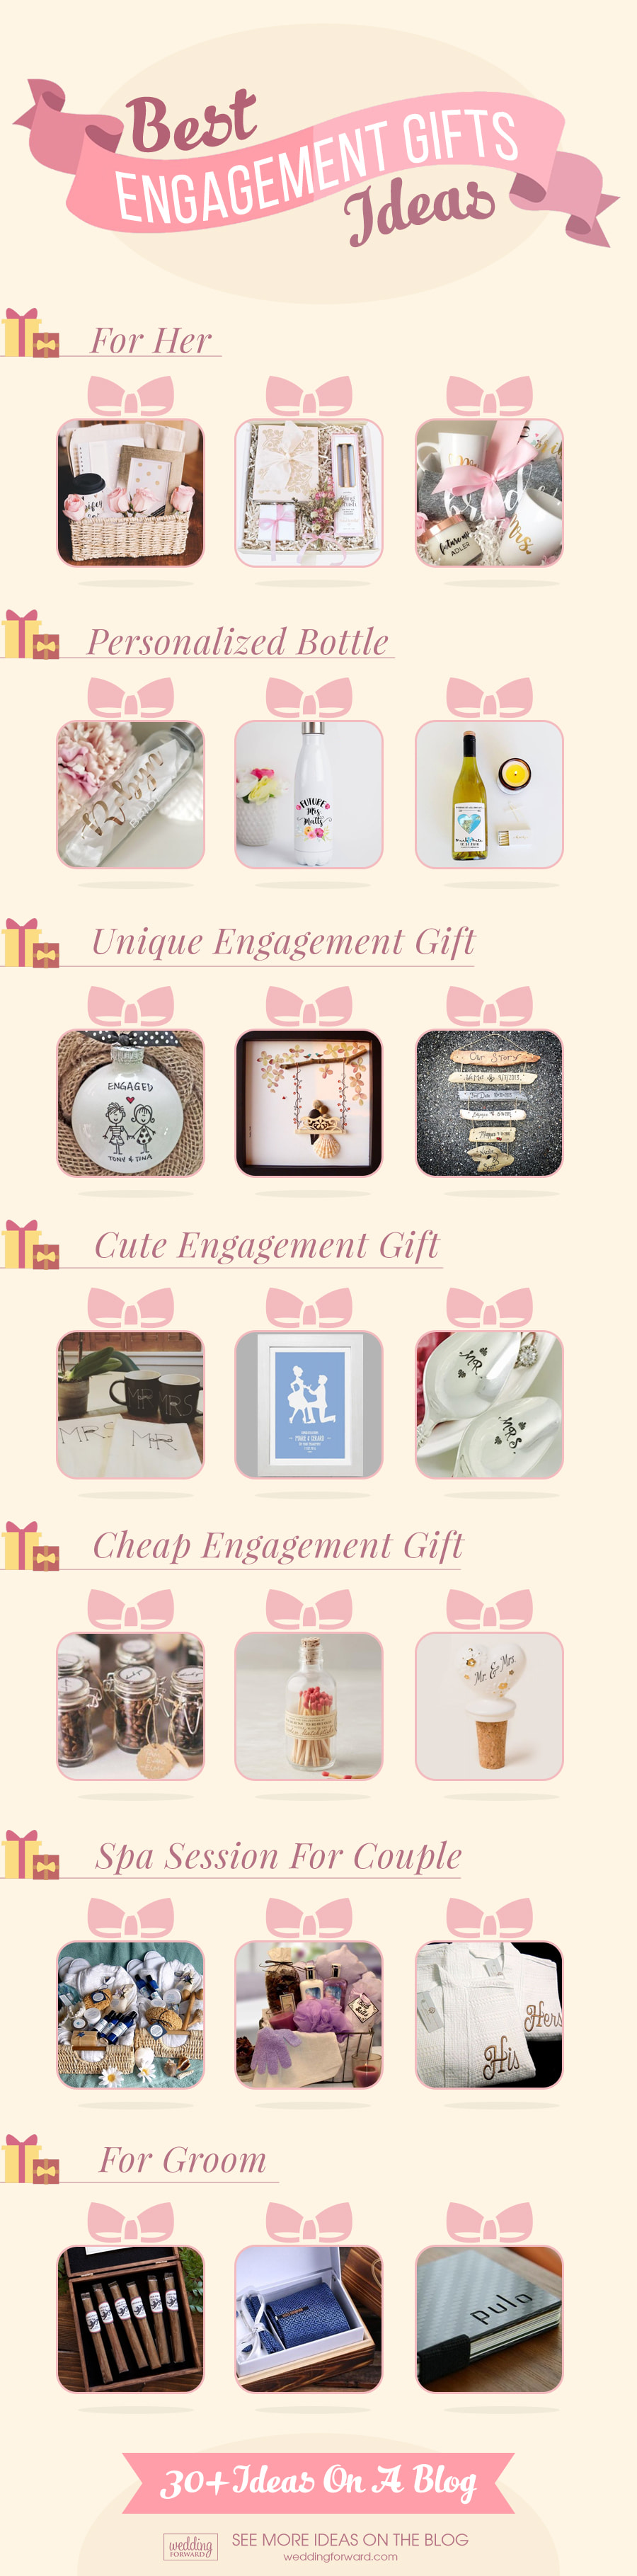 List of engagement gifts ideas